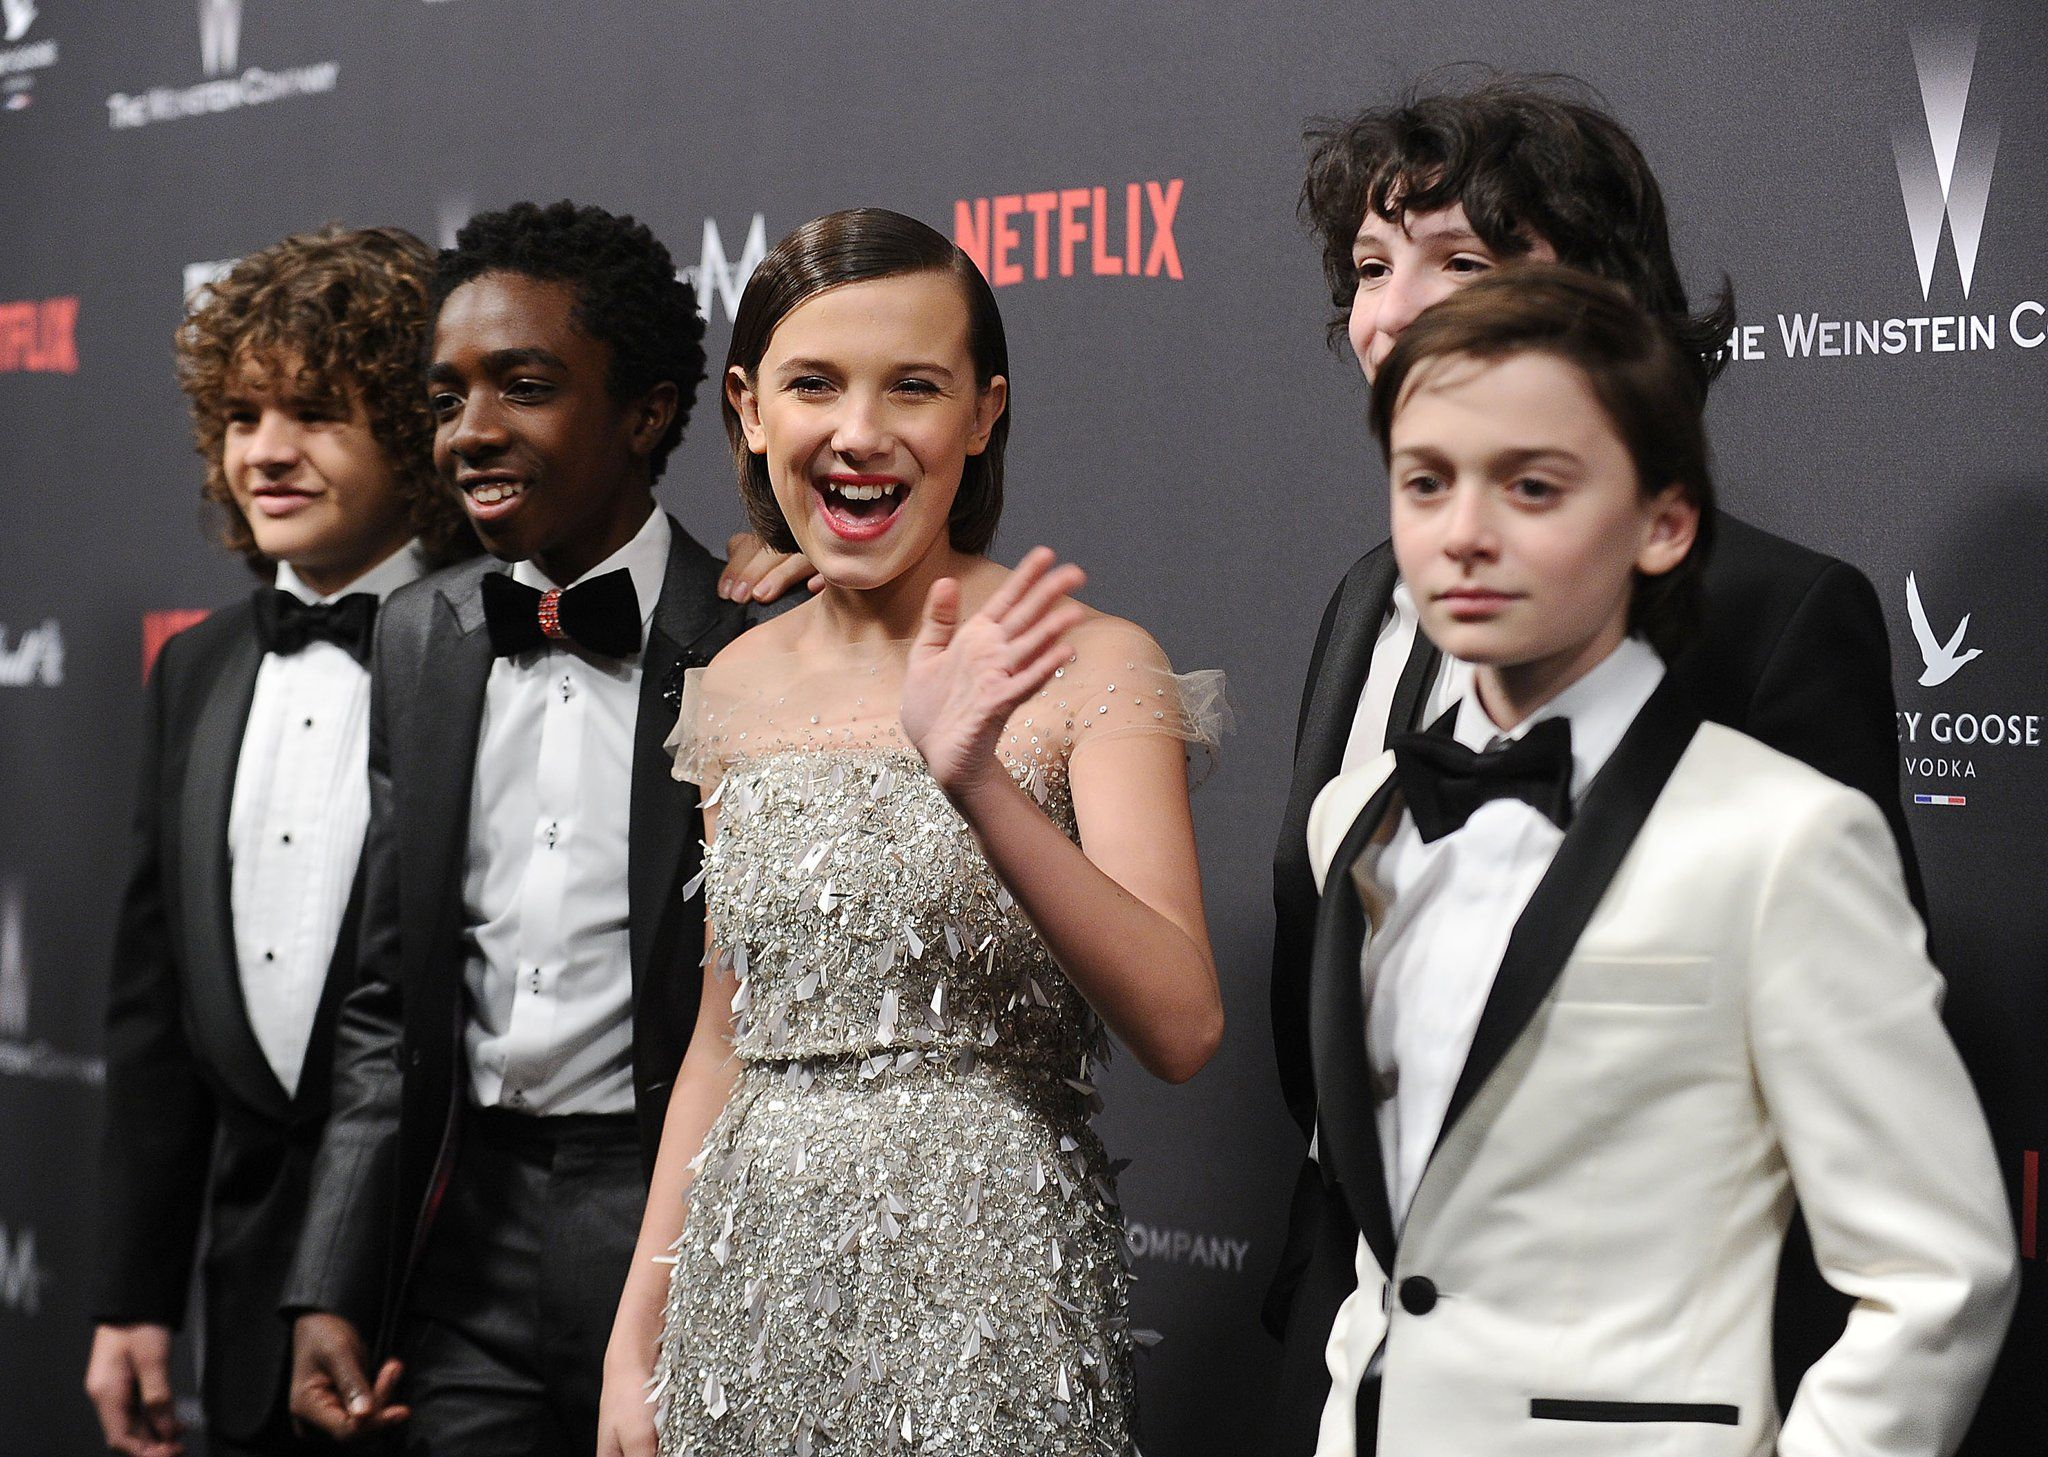 It Looks Like the Stranger Things Cast Stepped Out of a